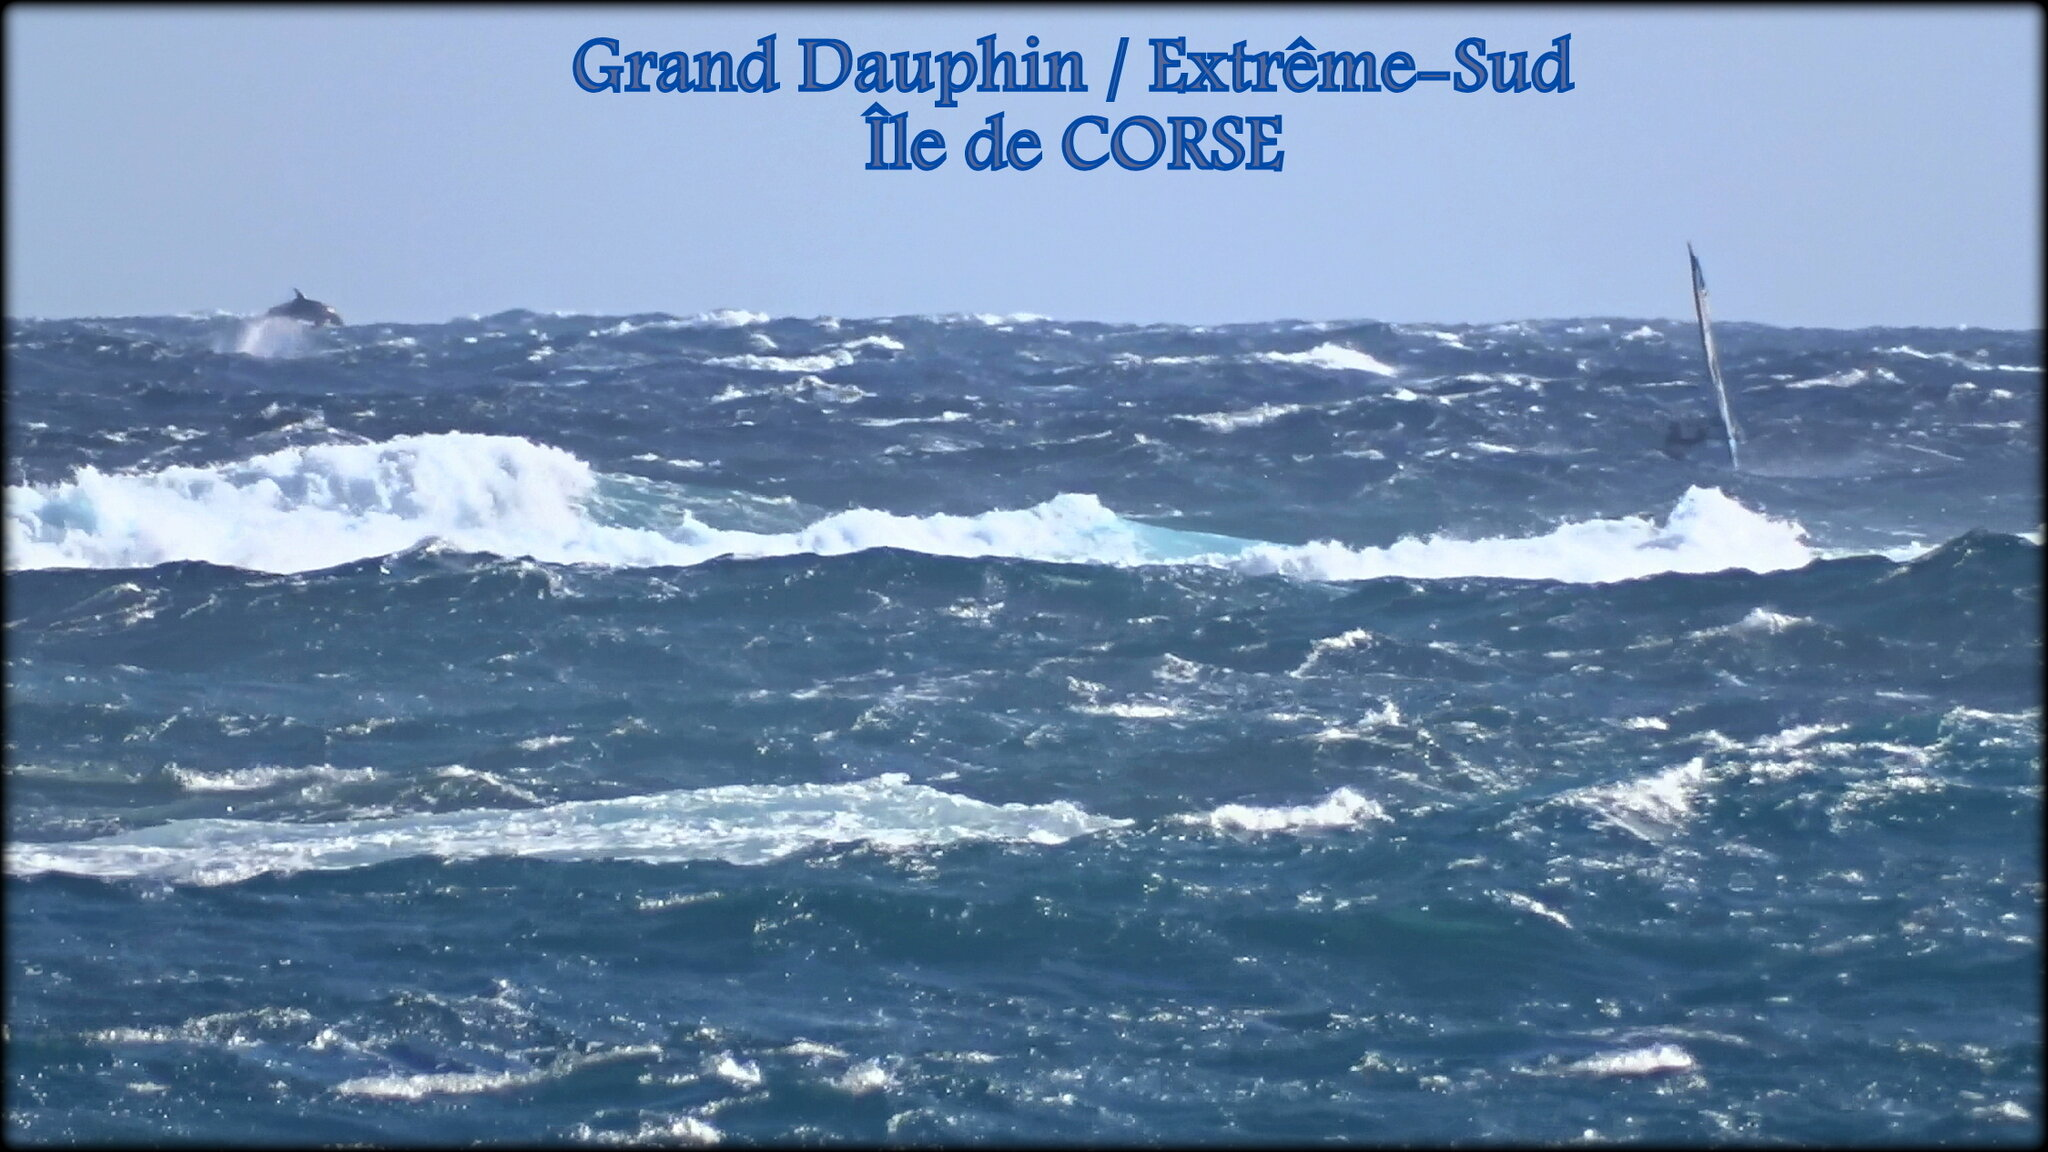 APPARITION_GROS_DAUPHINS_X_4__1__001